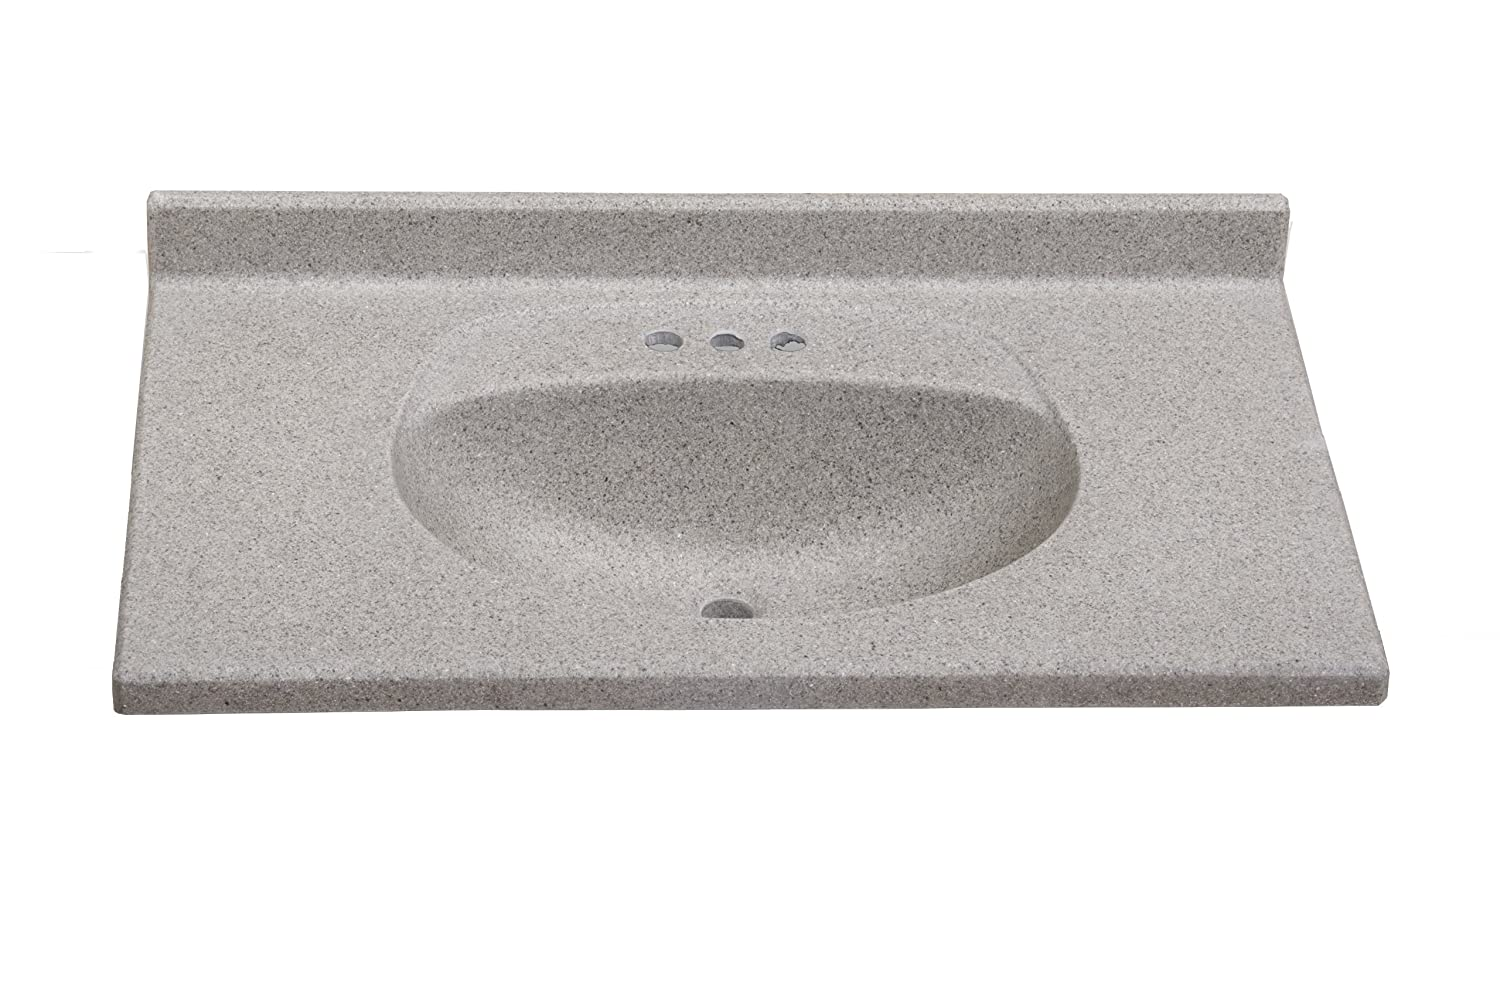 Durable Service Imperial Vb3722capss Olympic Oval Bowl Bathroom Vanity Top 37 Inch Wide By 22